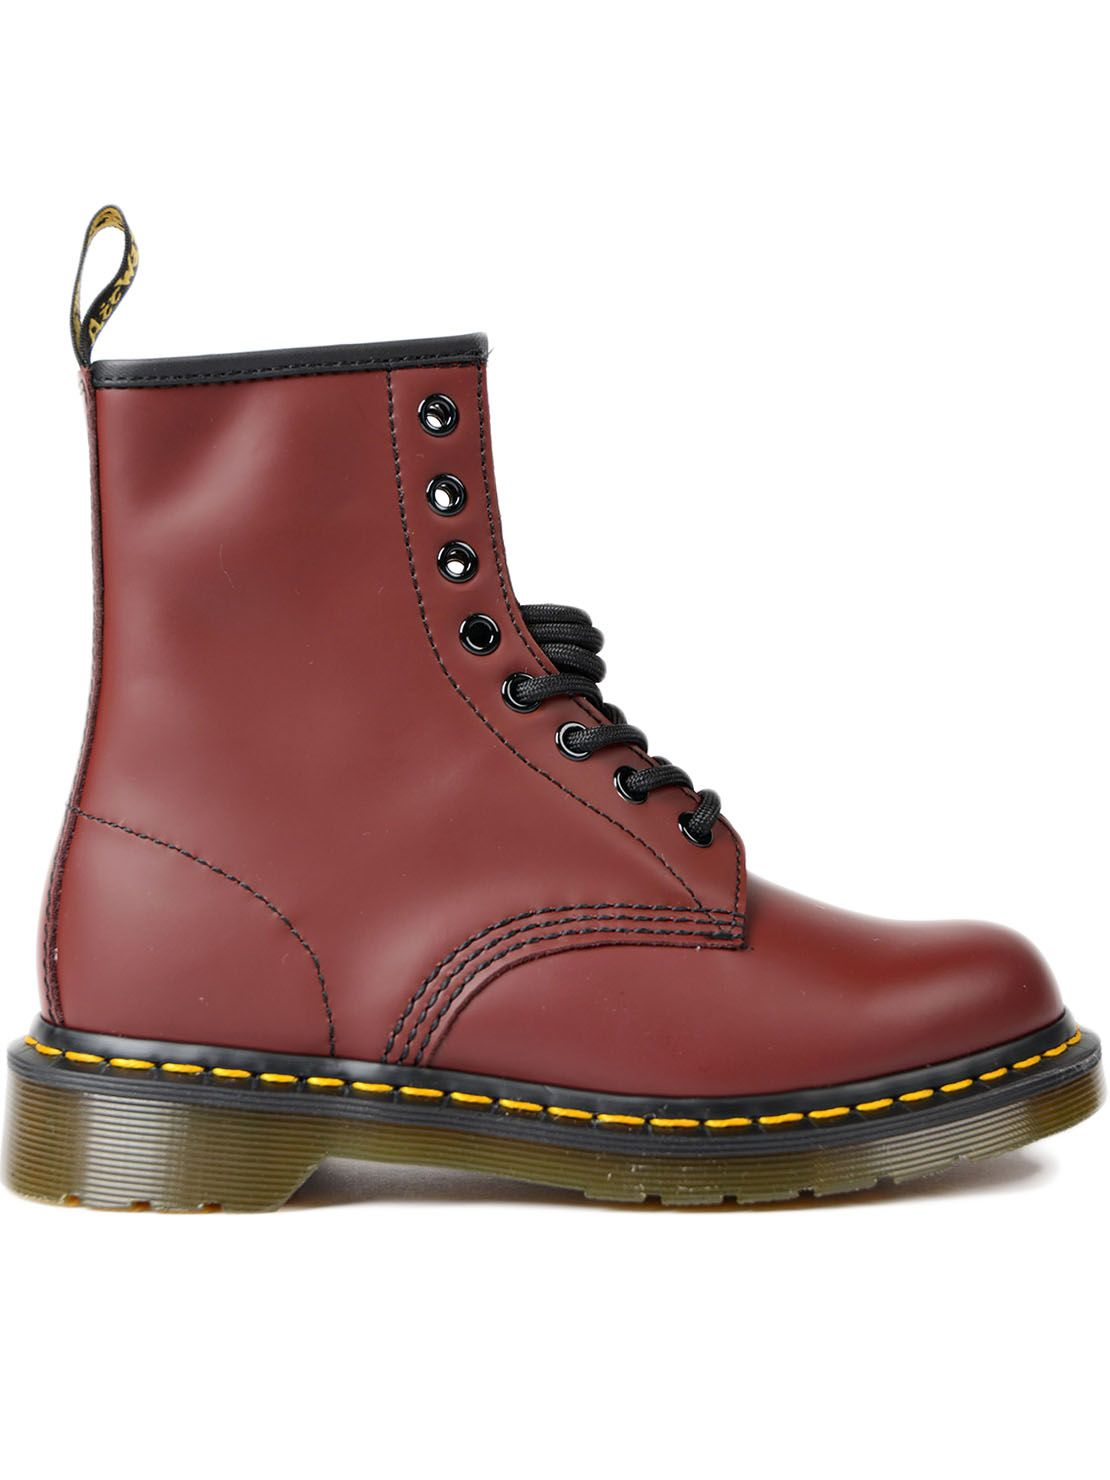 Dr. Martens Dr. Martens 1460 Smooth Lace-up Boots